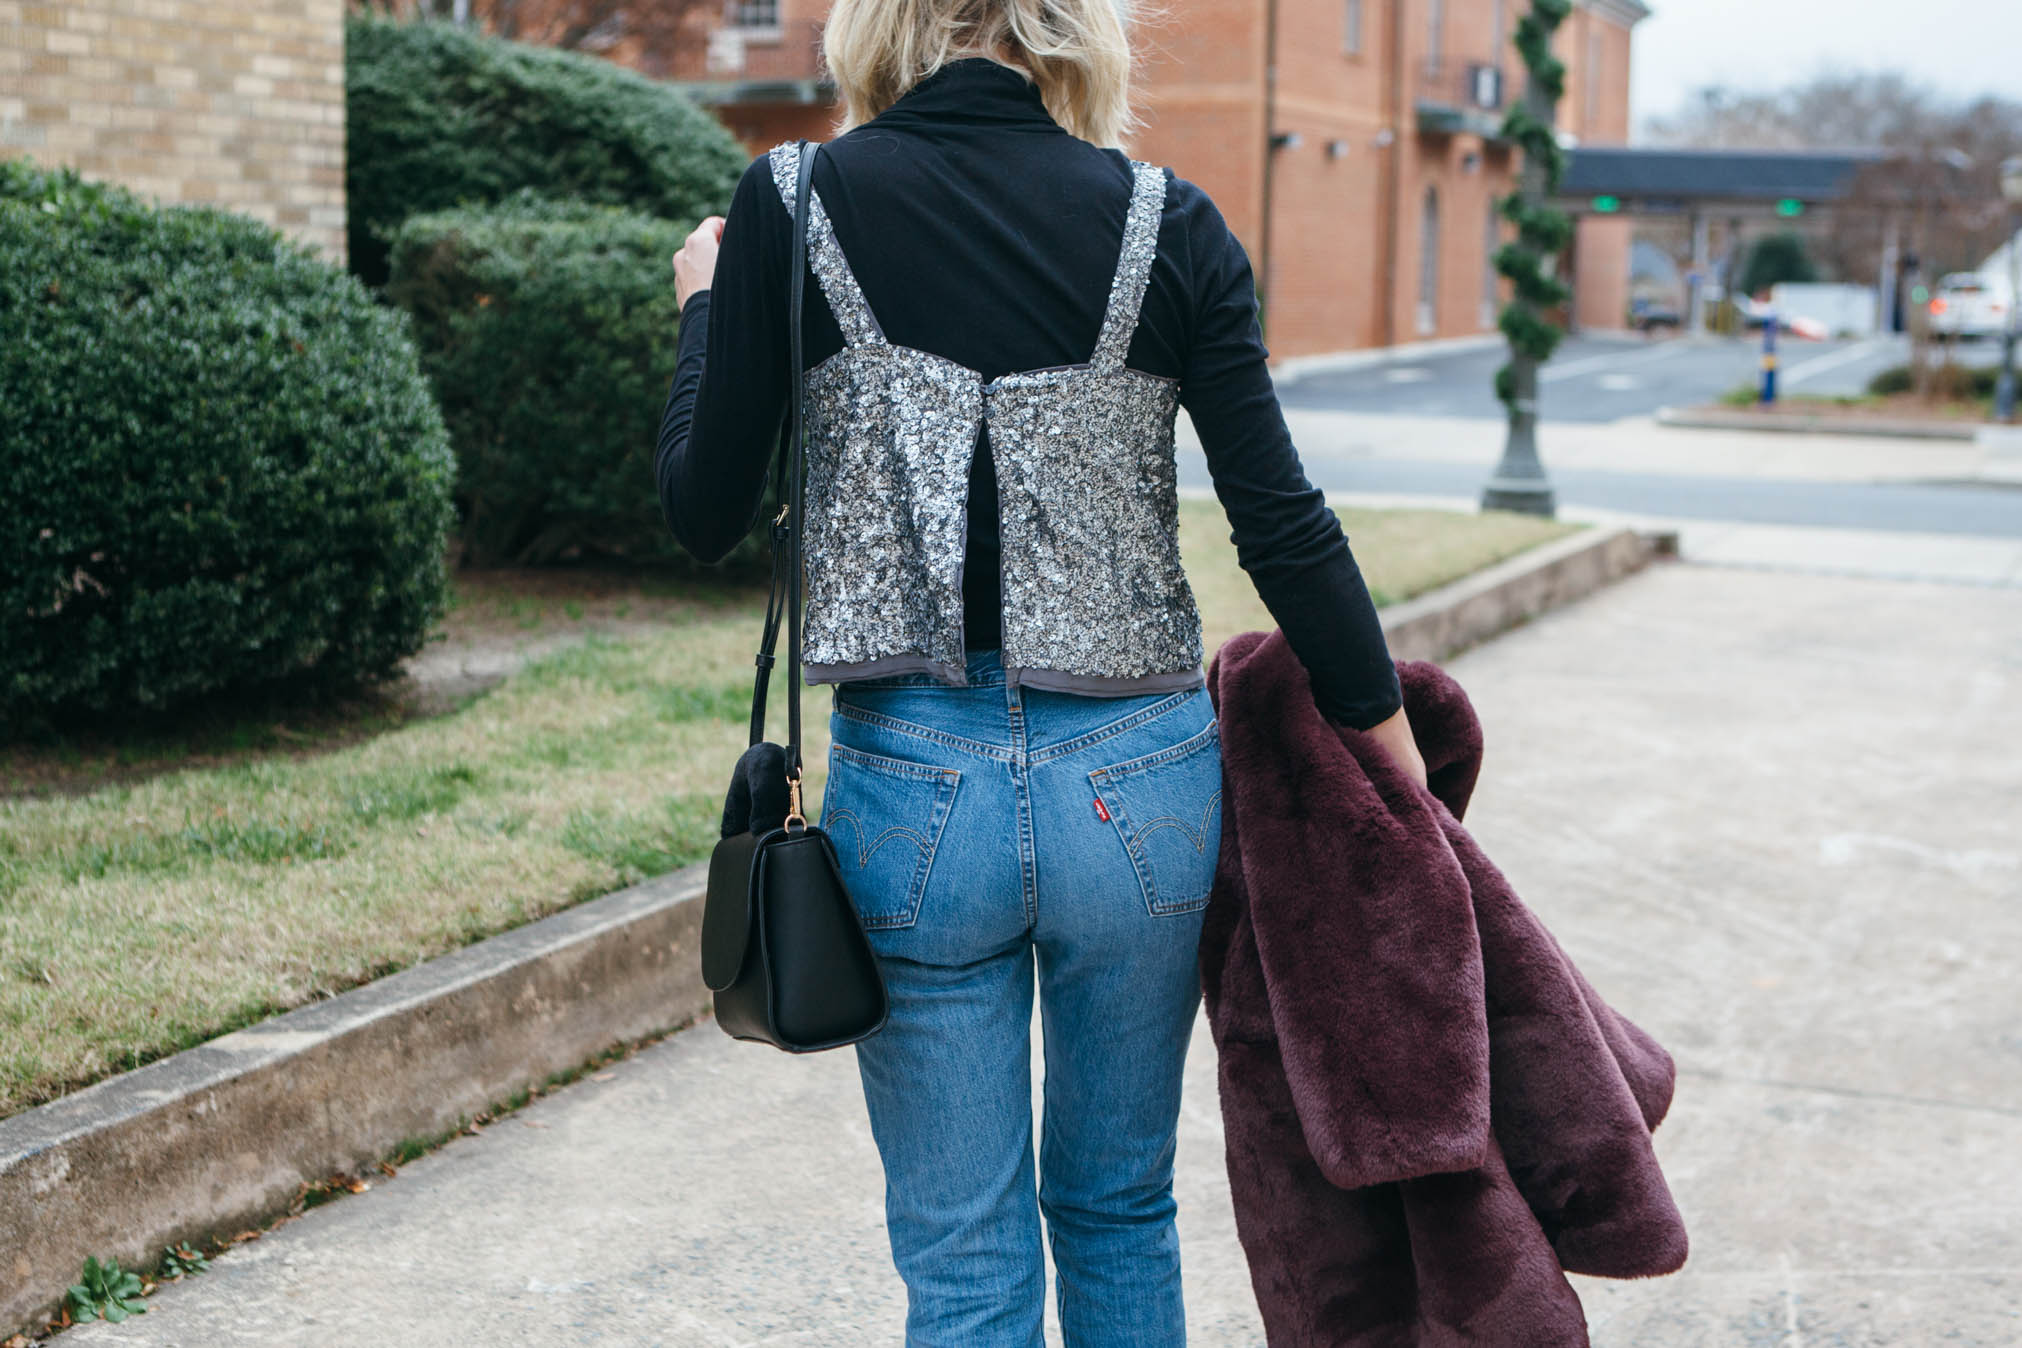 sequin top and levis jeans